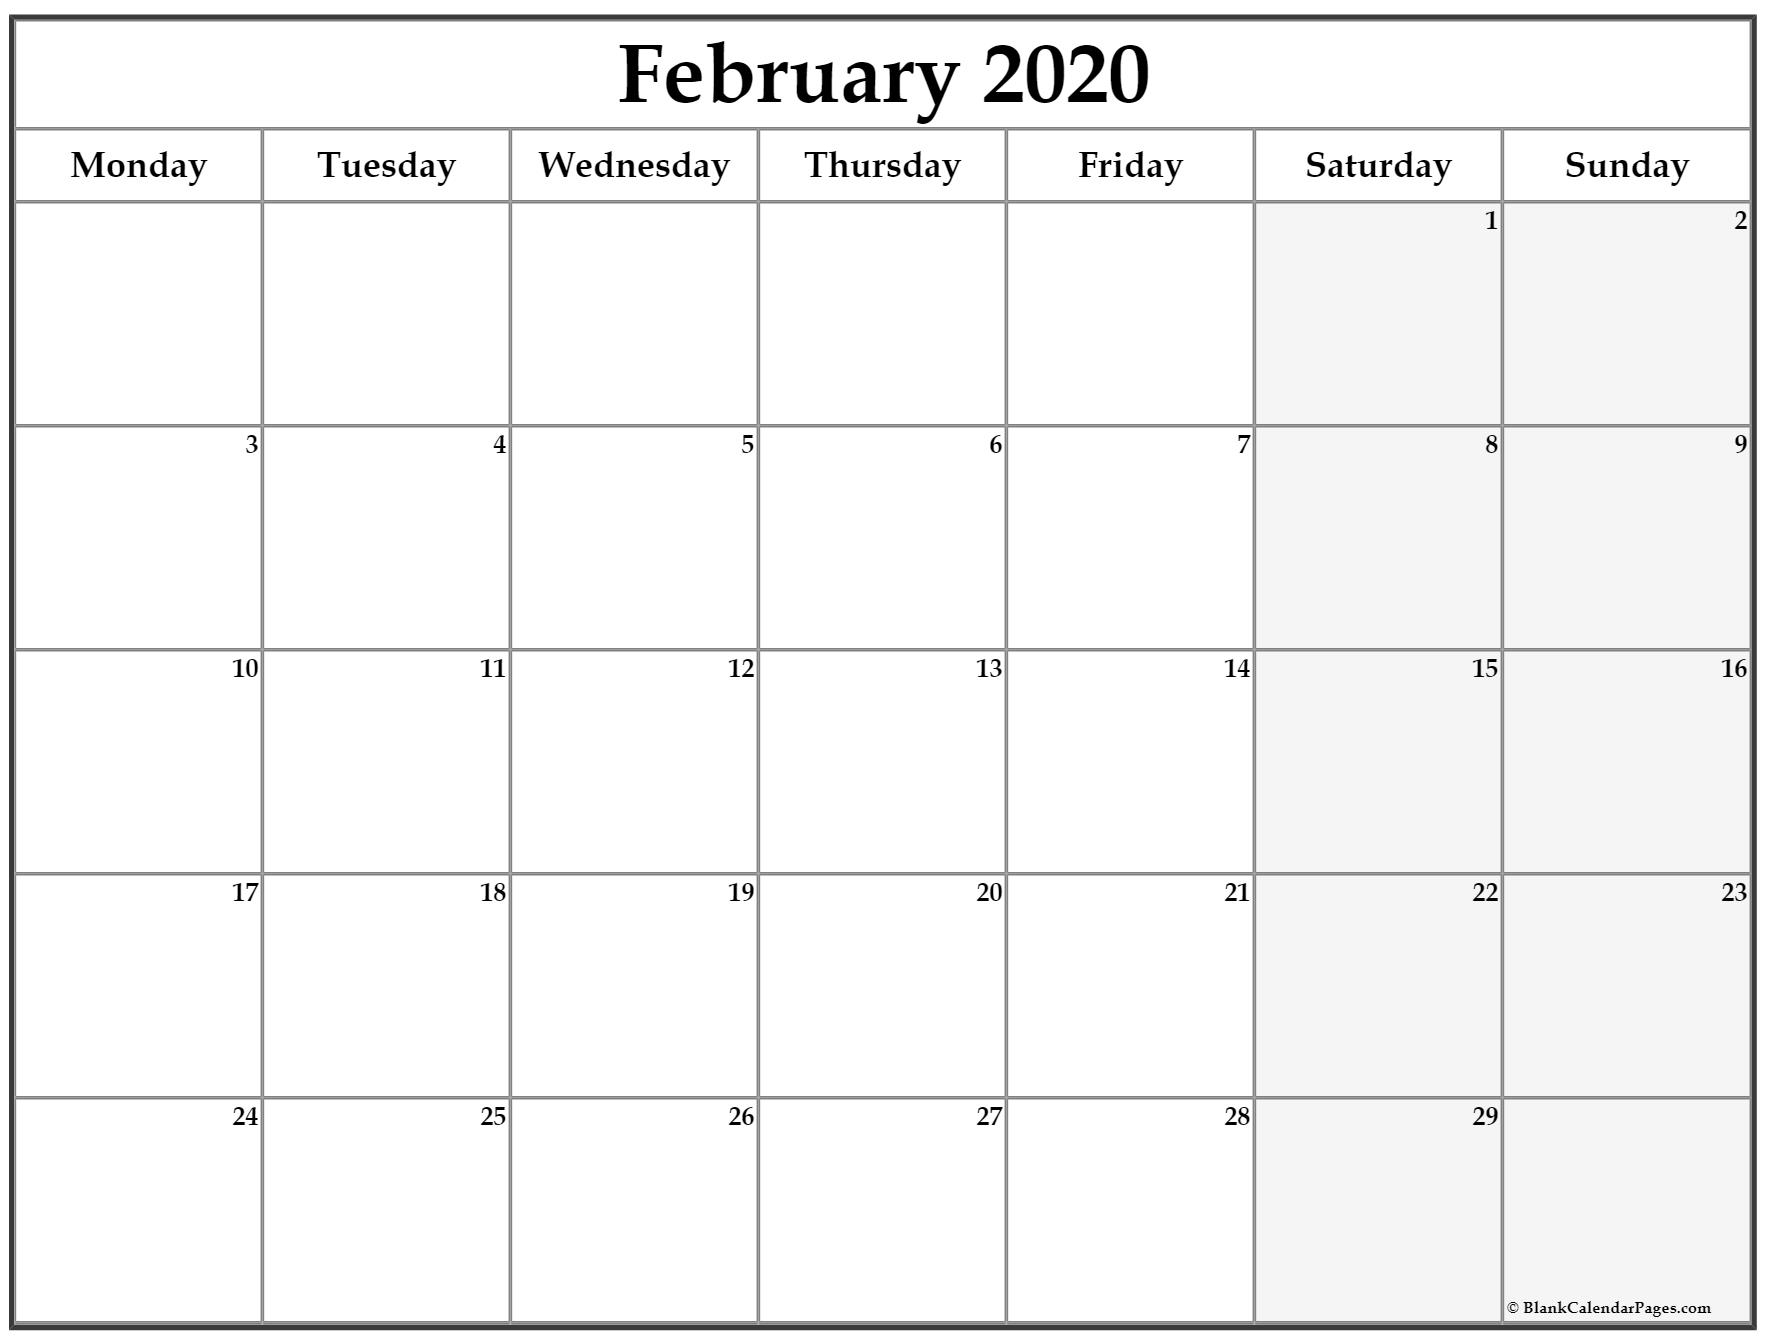 February 2020 Monday Calendar | Monday To Sunday intended for Saturday Through Friday Calendar